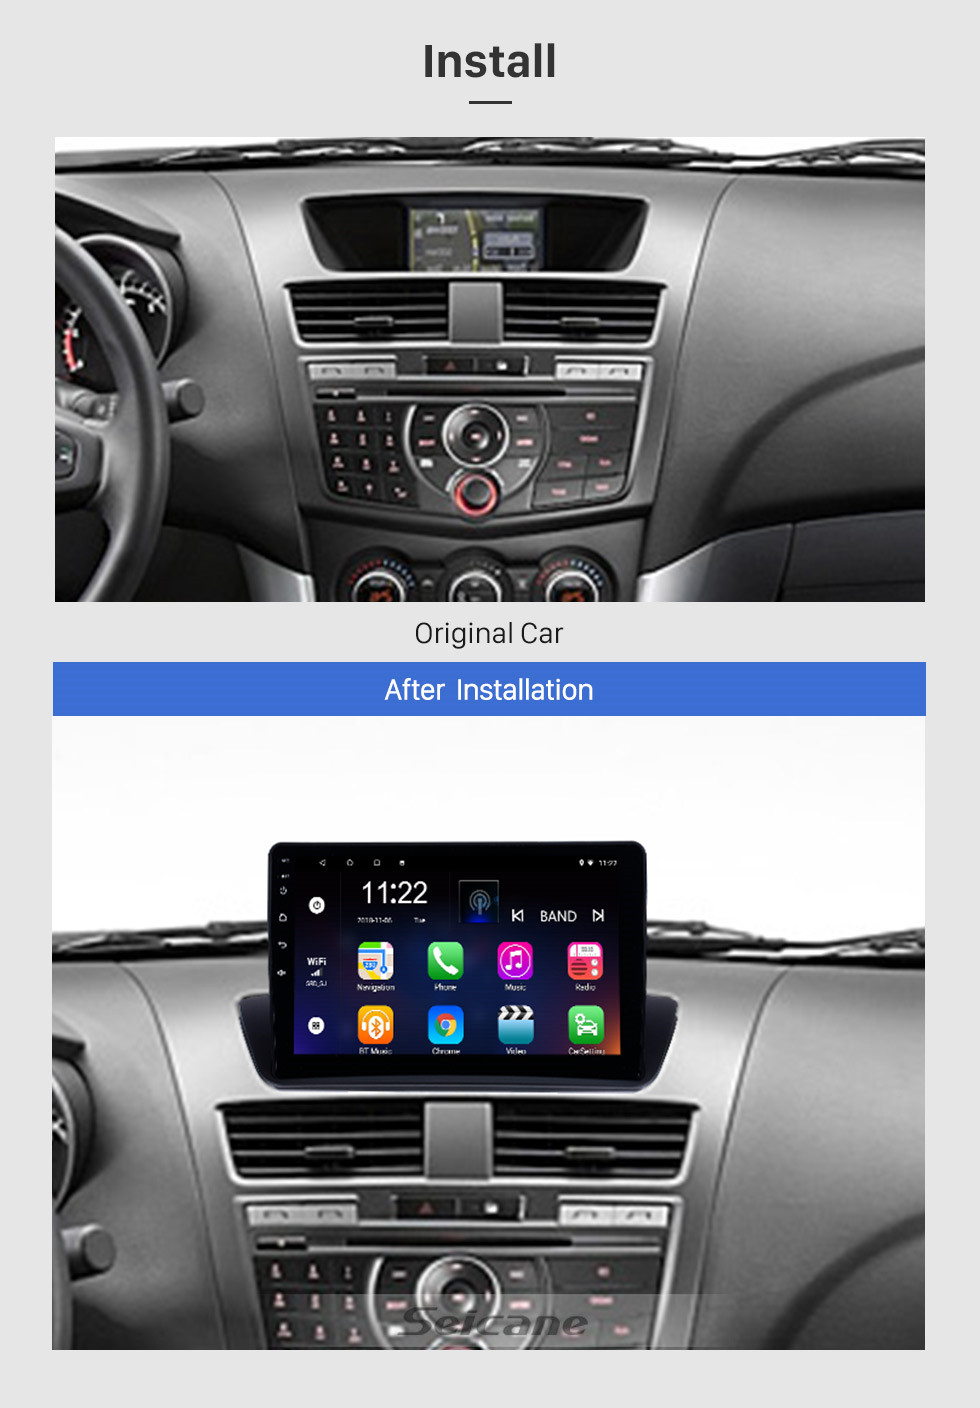 Seicane 9 inch OEM GPS Navigation Android 8.1 Stereo for 2012-2018 Mazda BT-50 Overseas version Touchscreen Radio Bluetooth Link WIFI AUX USB Steering Wheel Control support OBD 3G DVR